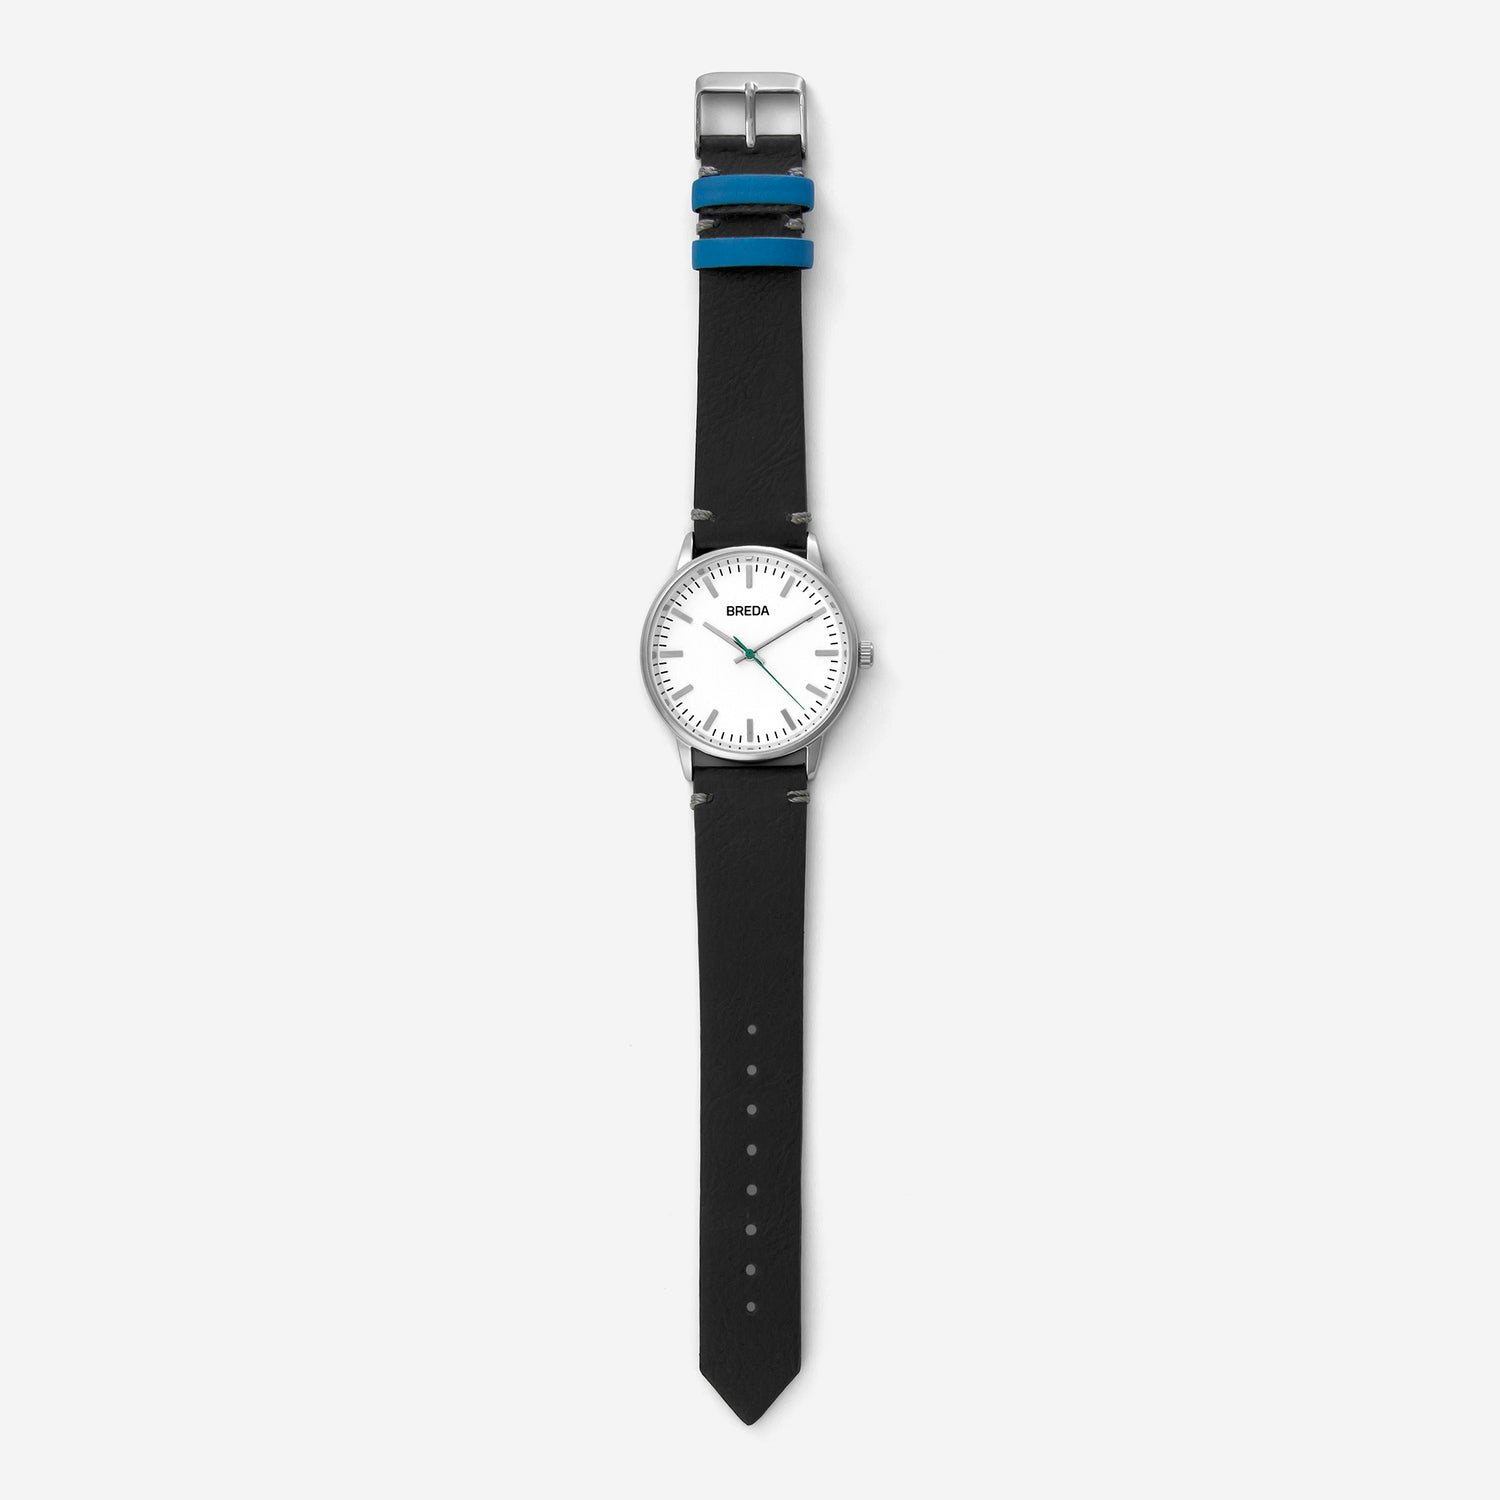 breda-zapf-1697e-silver-black-watch-long